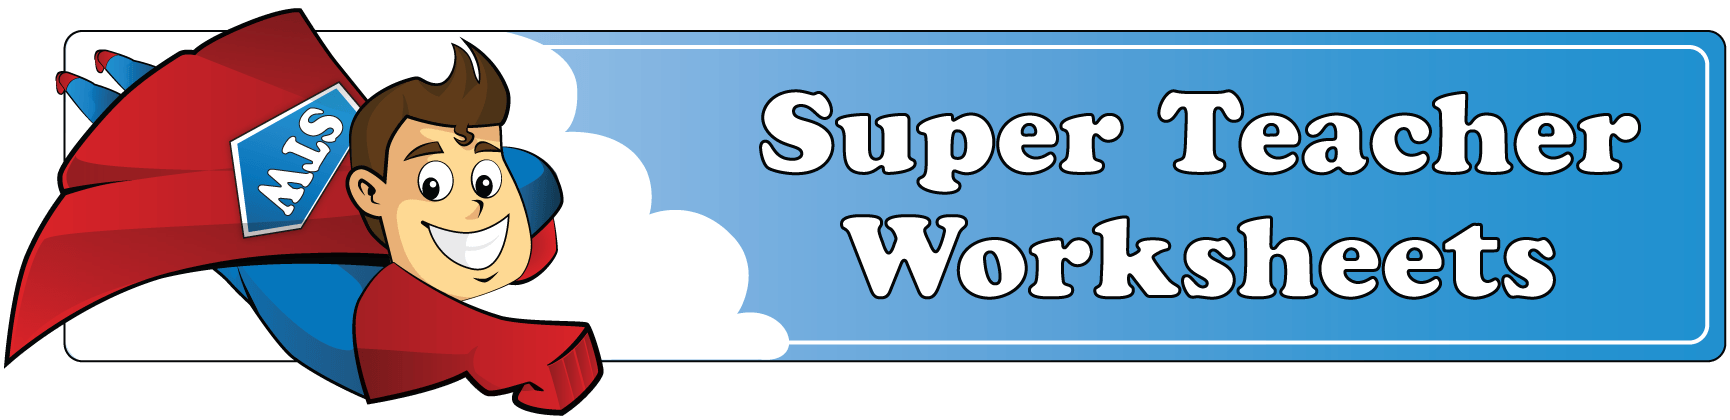 Log In to Super Teacher Worksheets – Super Teacher Worksheets Username and Password